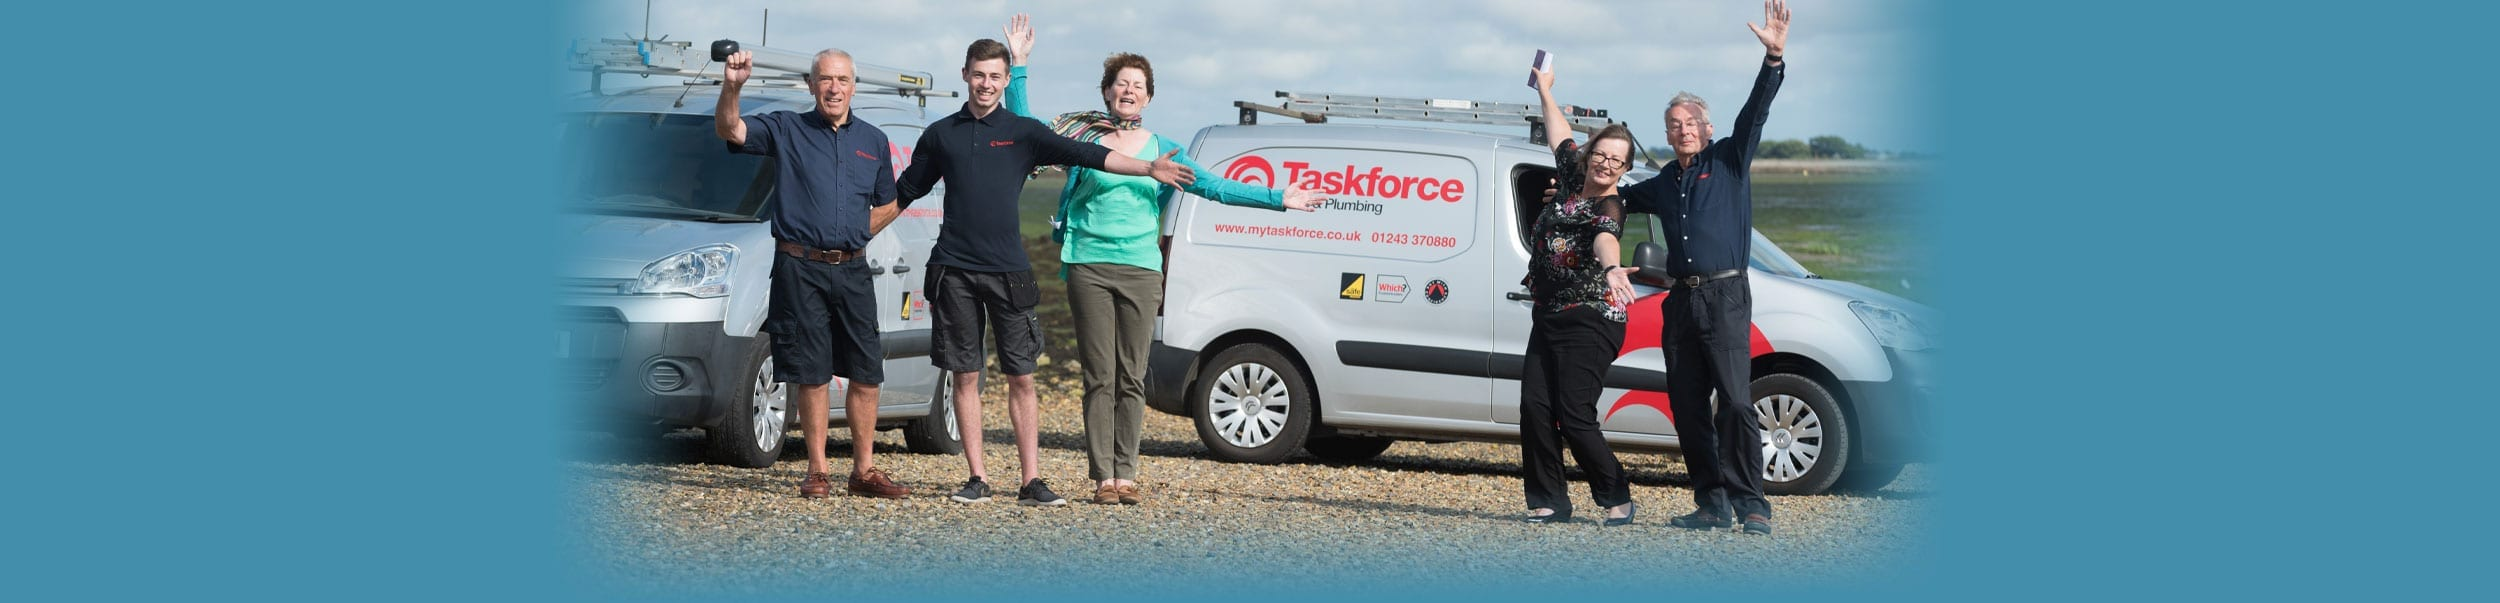 TaskForce Heating Plumbing